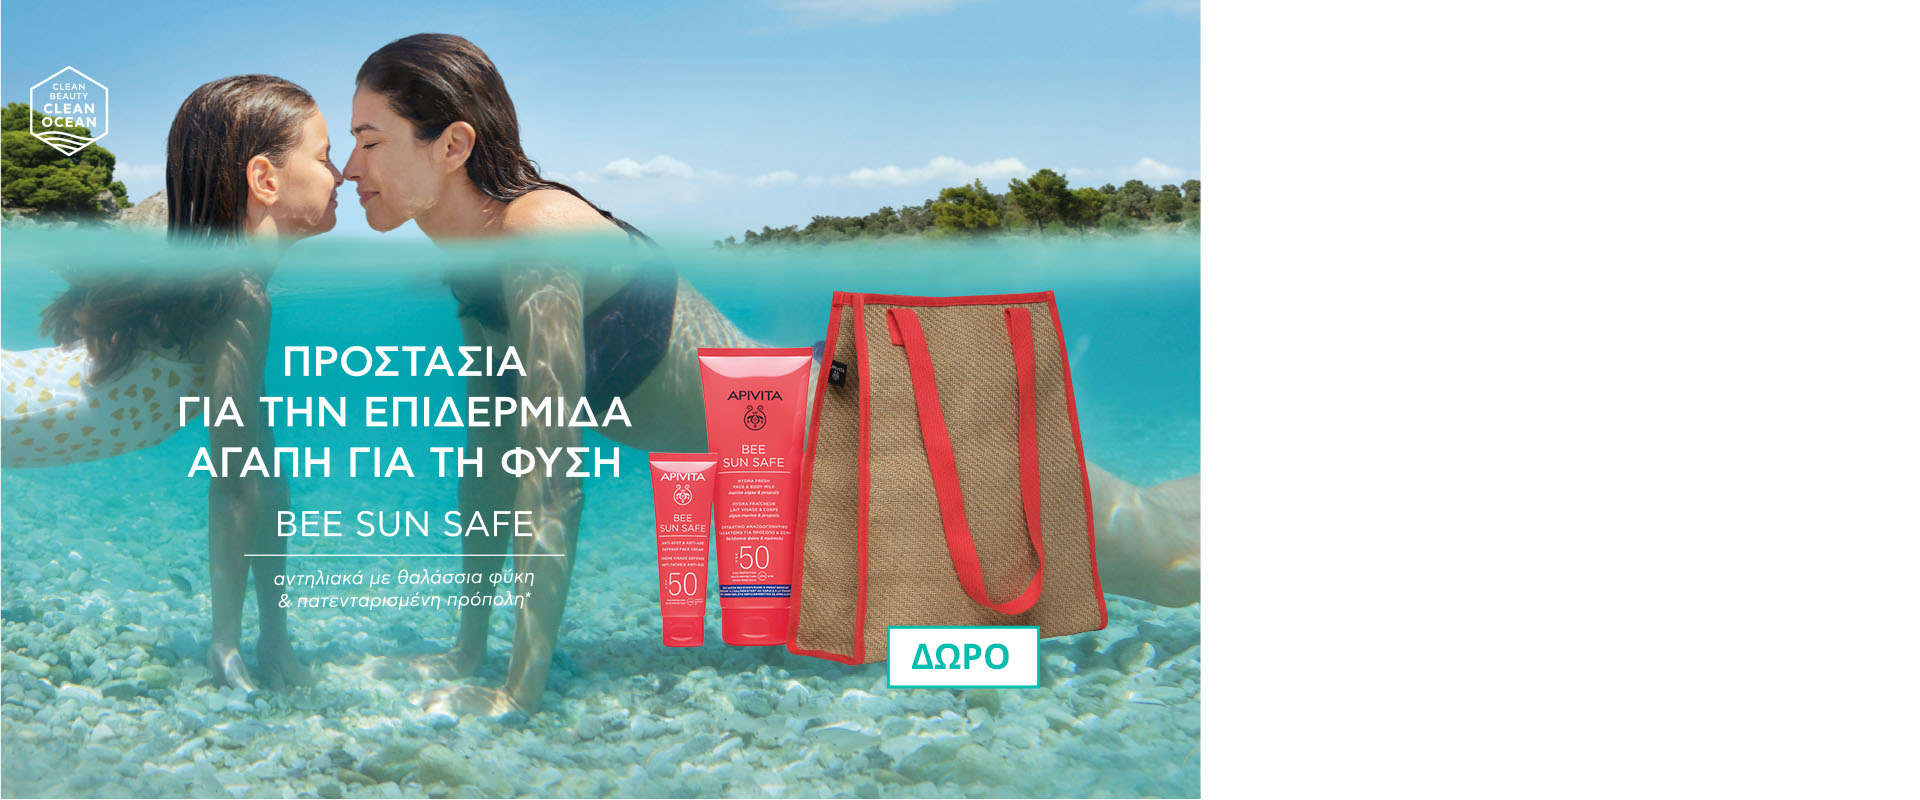 BUY 2 APIVITA SUNSCREENS FROM THE NEW BEE SUN SAFE SERIES WITH -40%